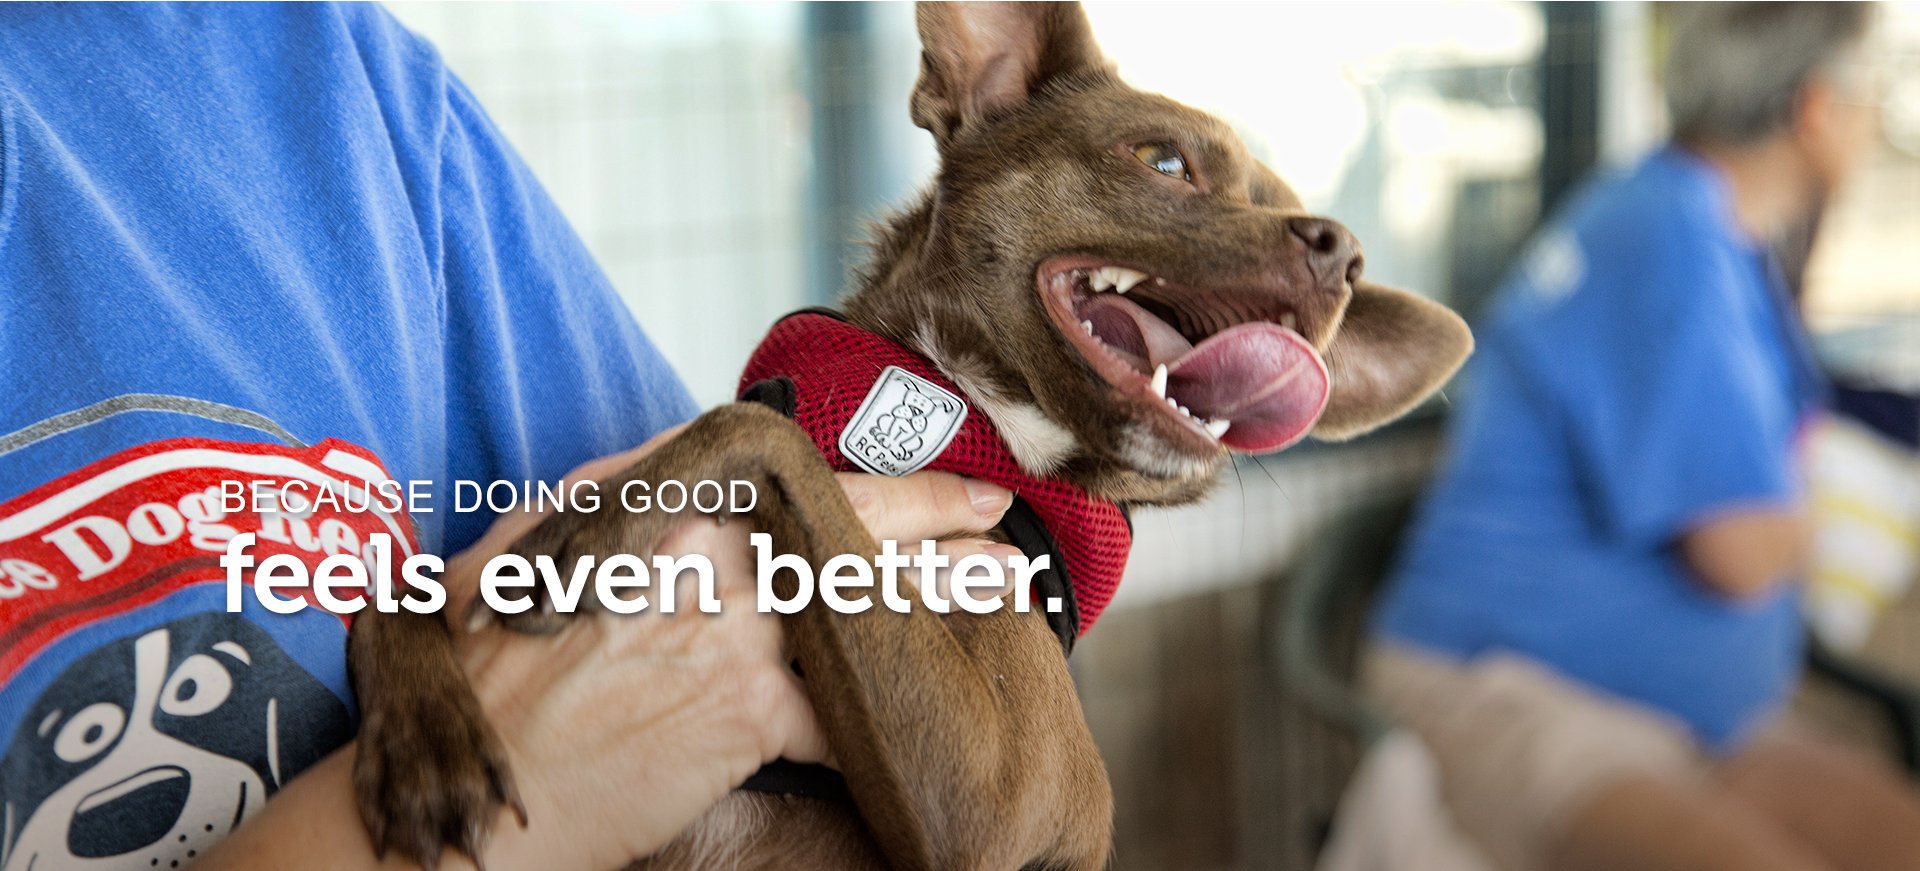 "A little Chihuahua with his tongue out and mouth open is being held at a Petco Foundation adoption event. Text across the image reads, ""because doing good feels even better."""